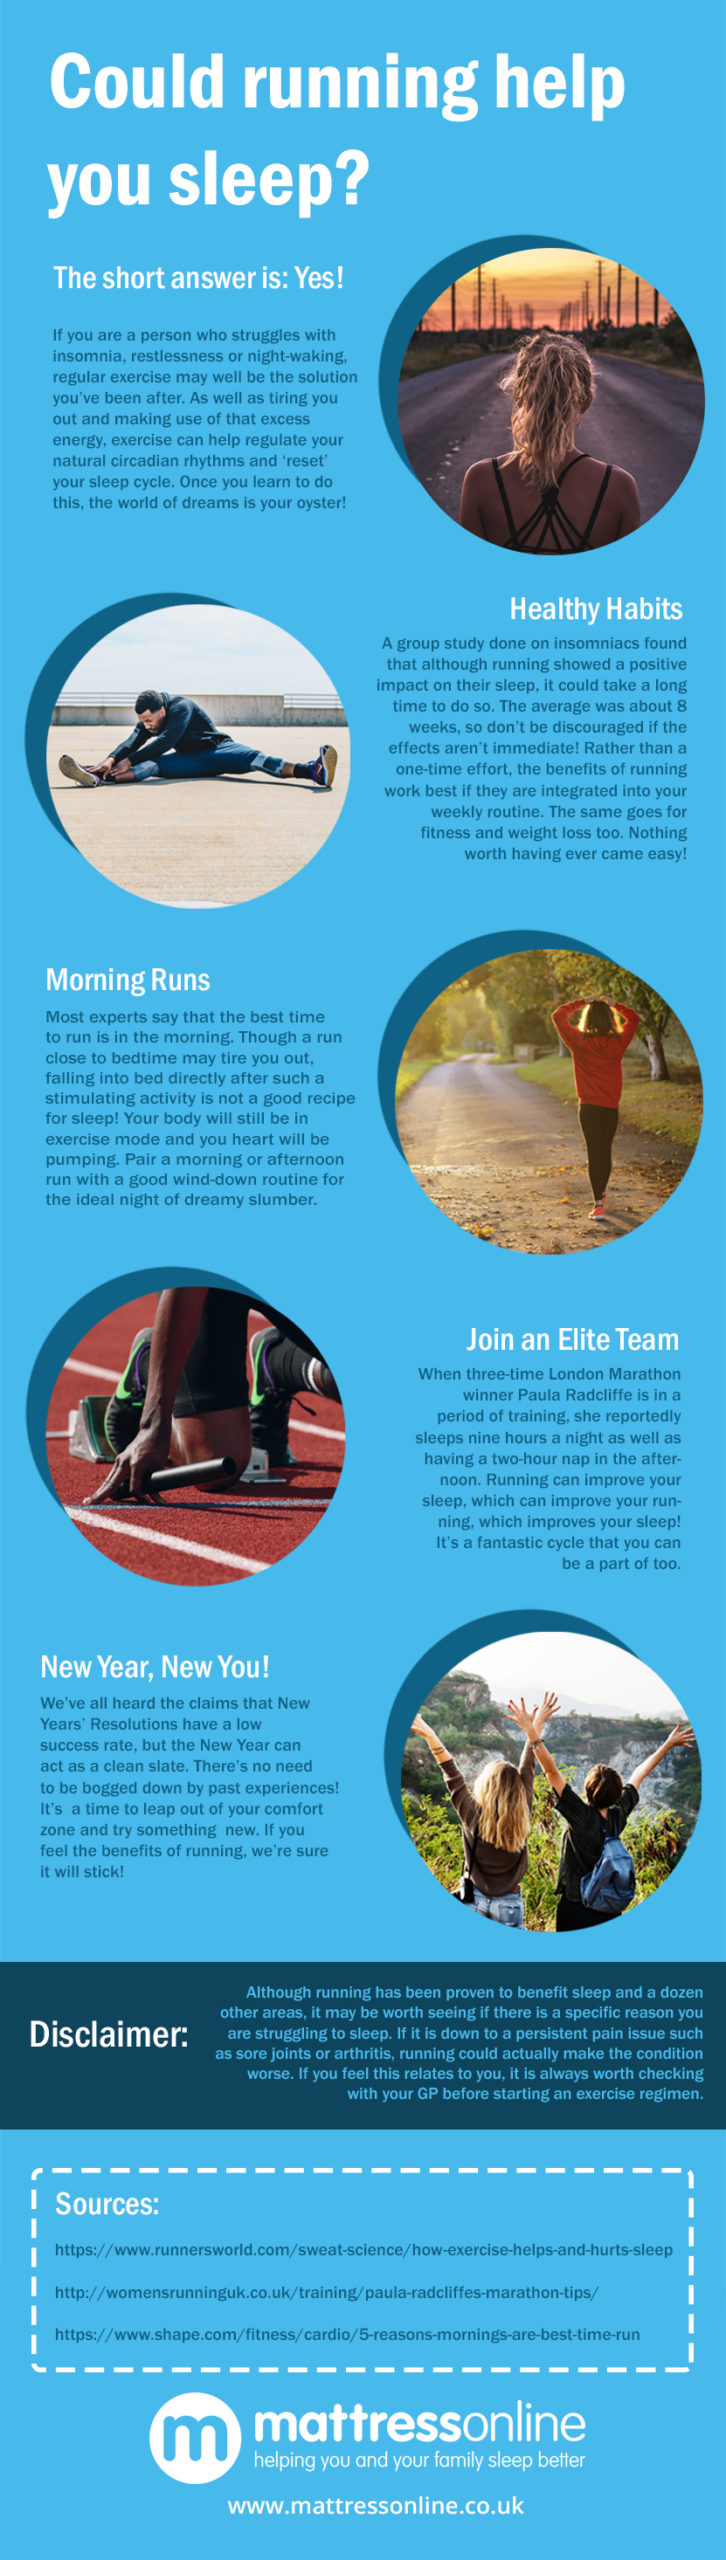 An infographic detailing the ways in which running can positively affect sleep and how to go about integrating it into your routine.